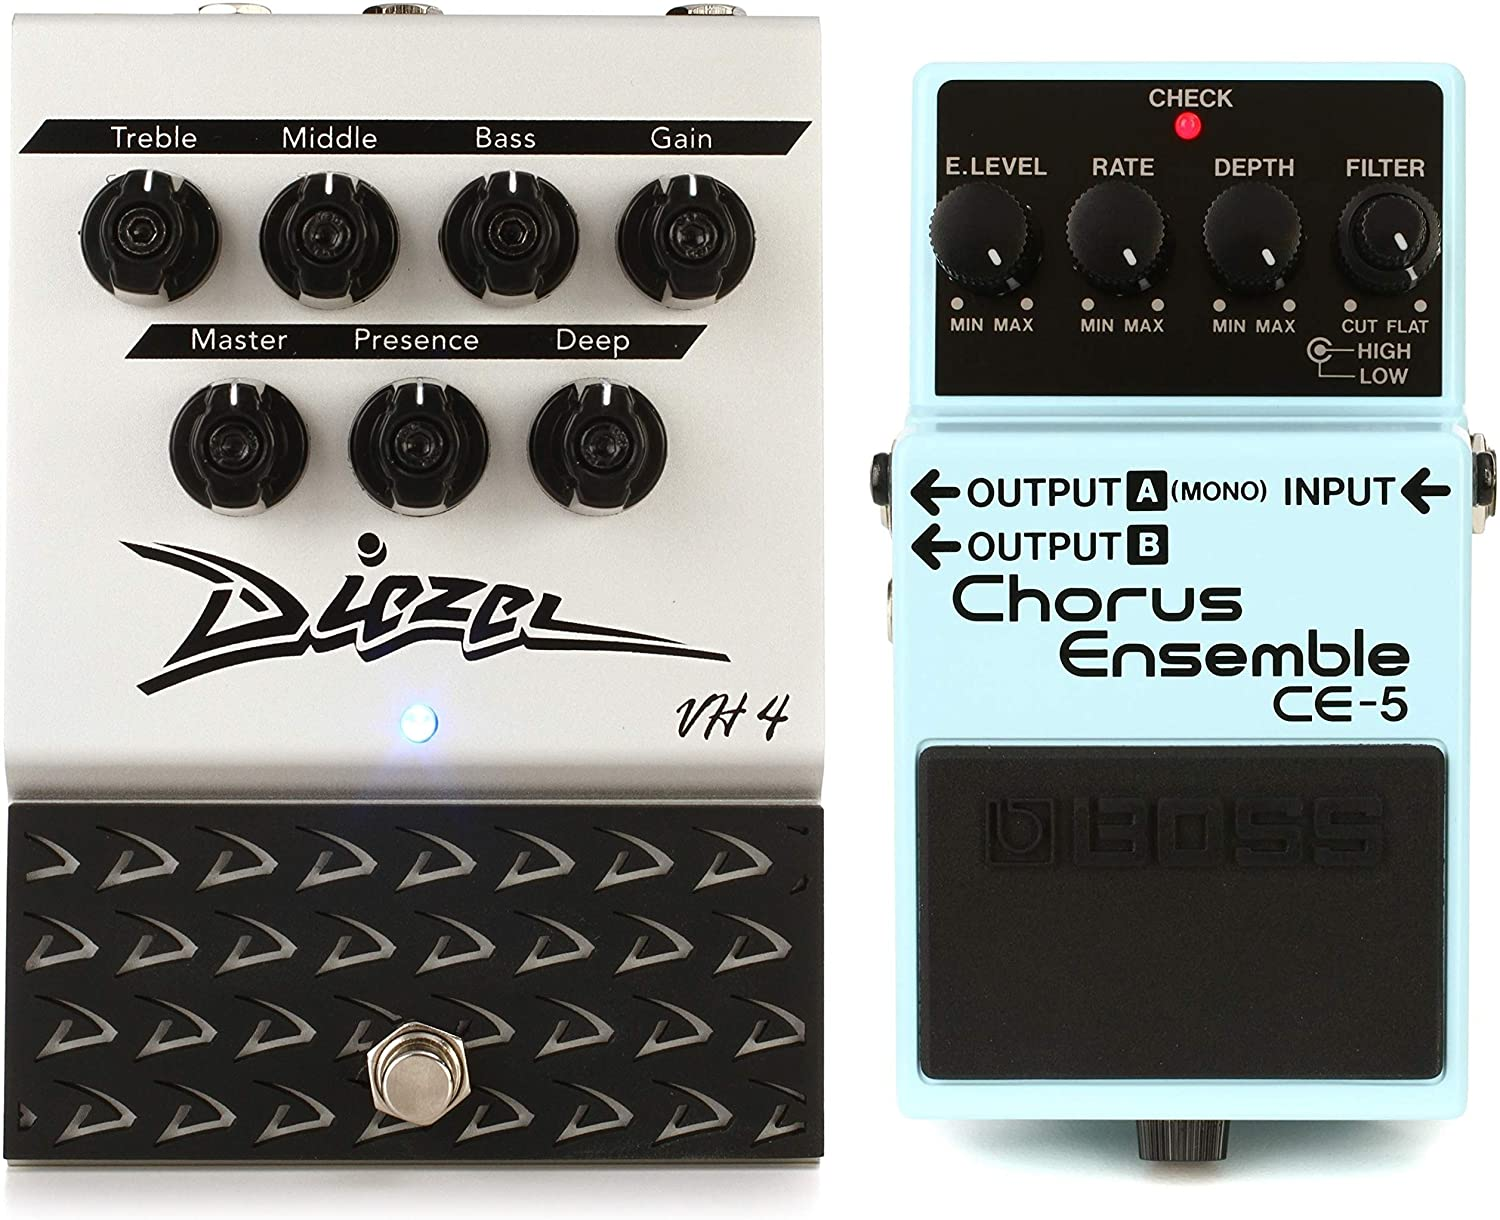 Diezel VH4 Pedal Overdrive and Preamp + Boss CE-5 Stereo Chorus Ensemble Pedal Value Bundle